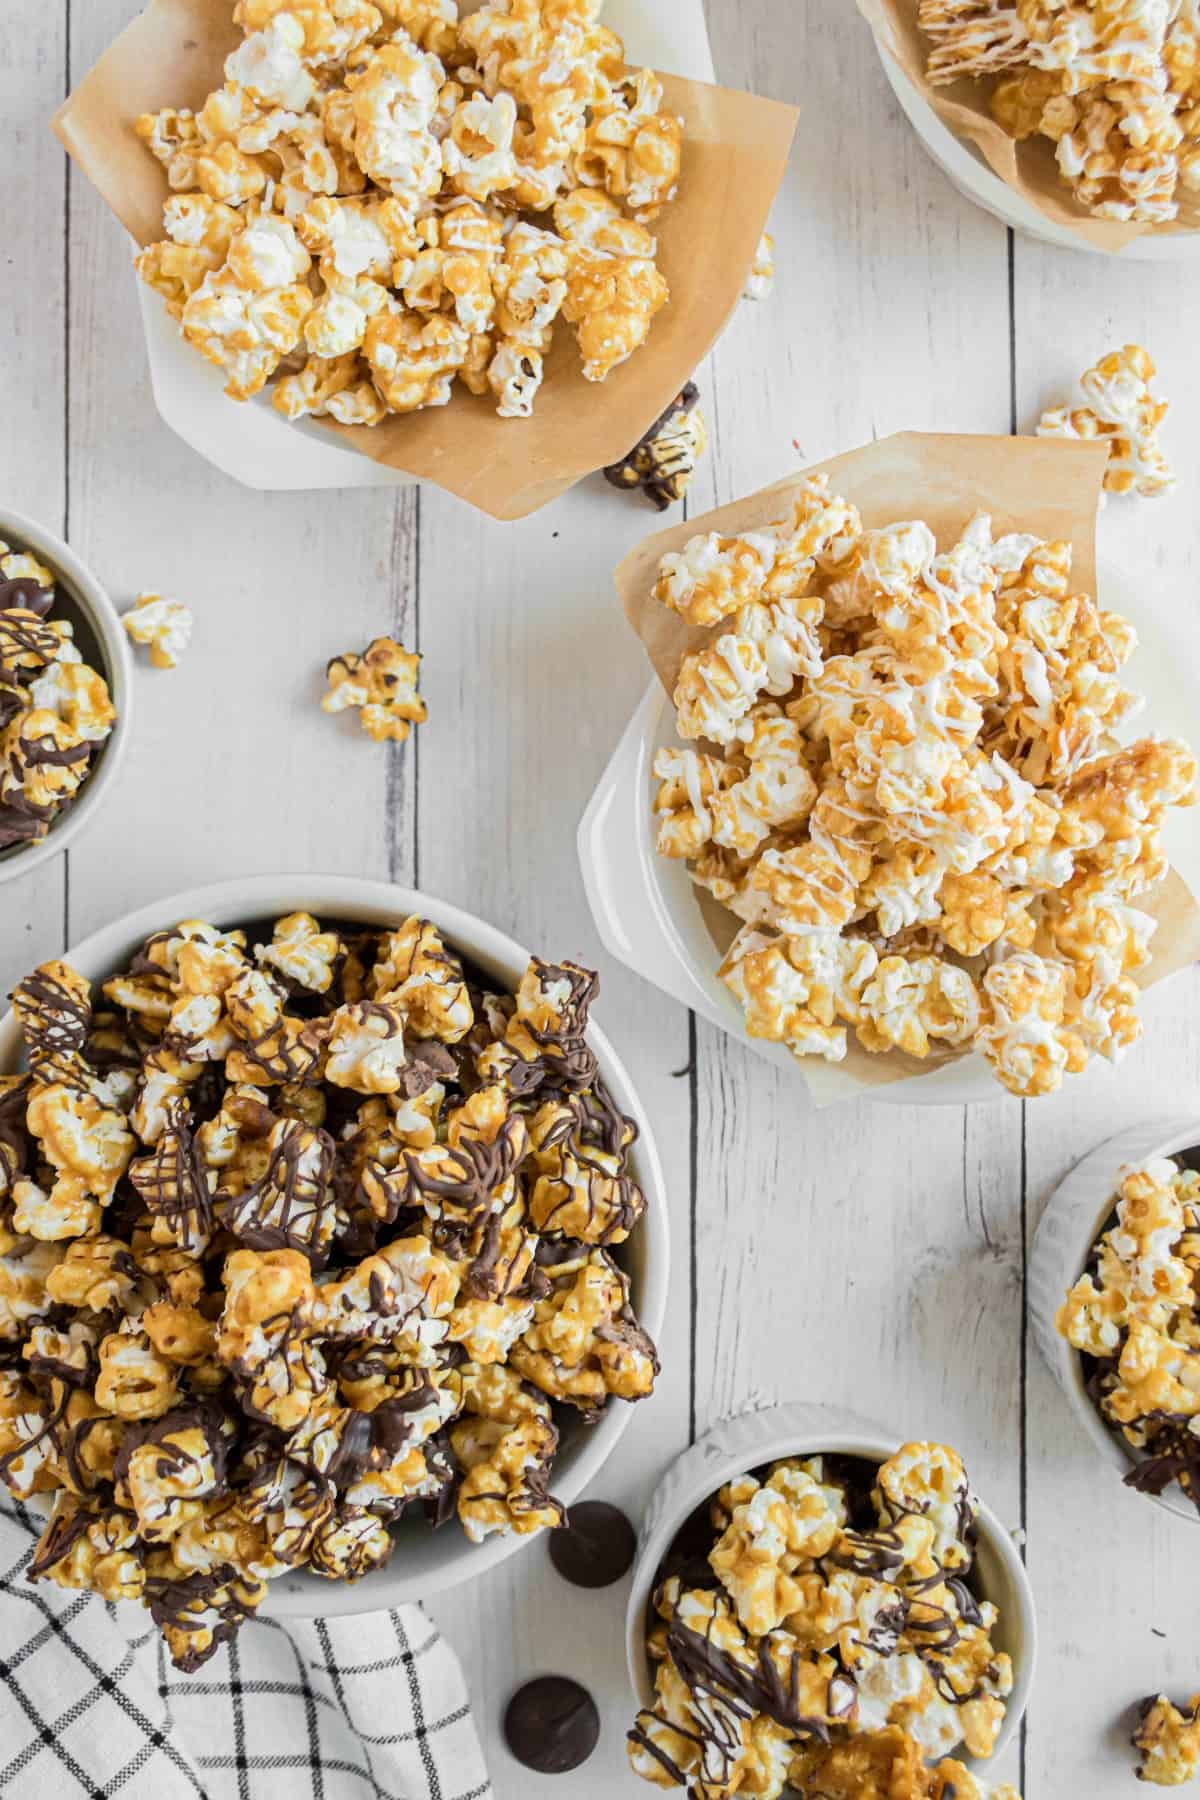 White and dark chocolate covered caramel corn in bowls.